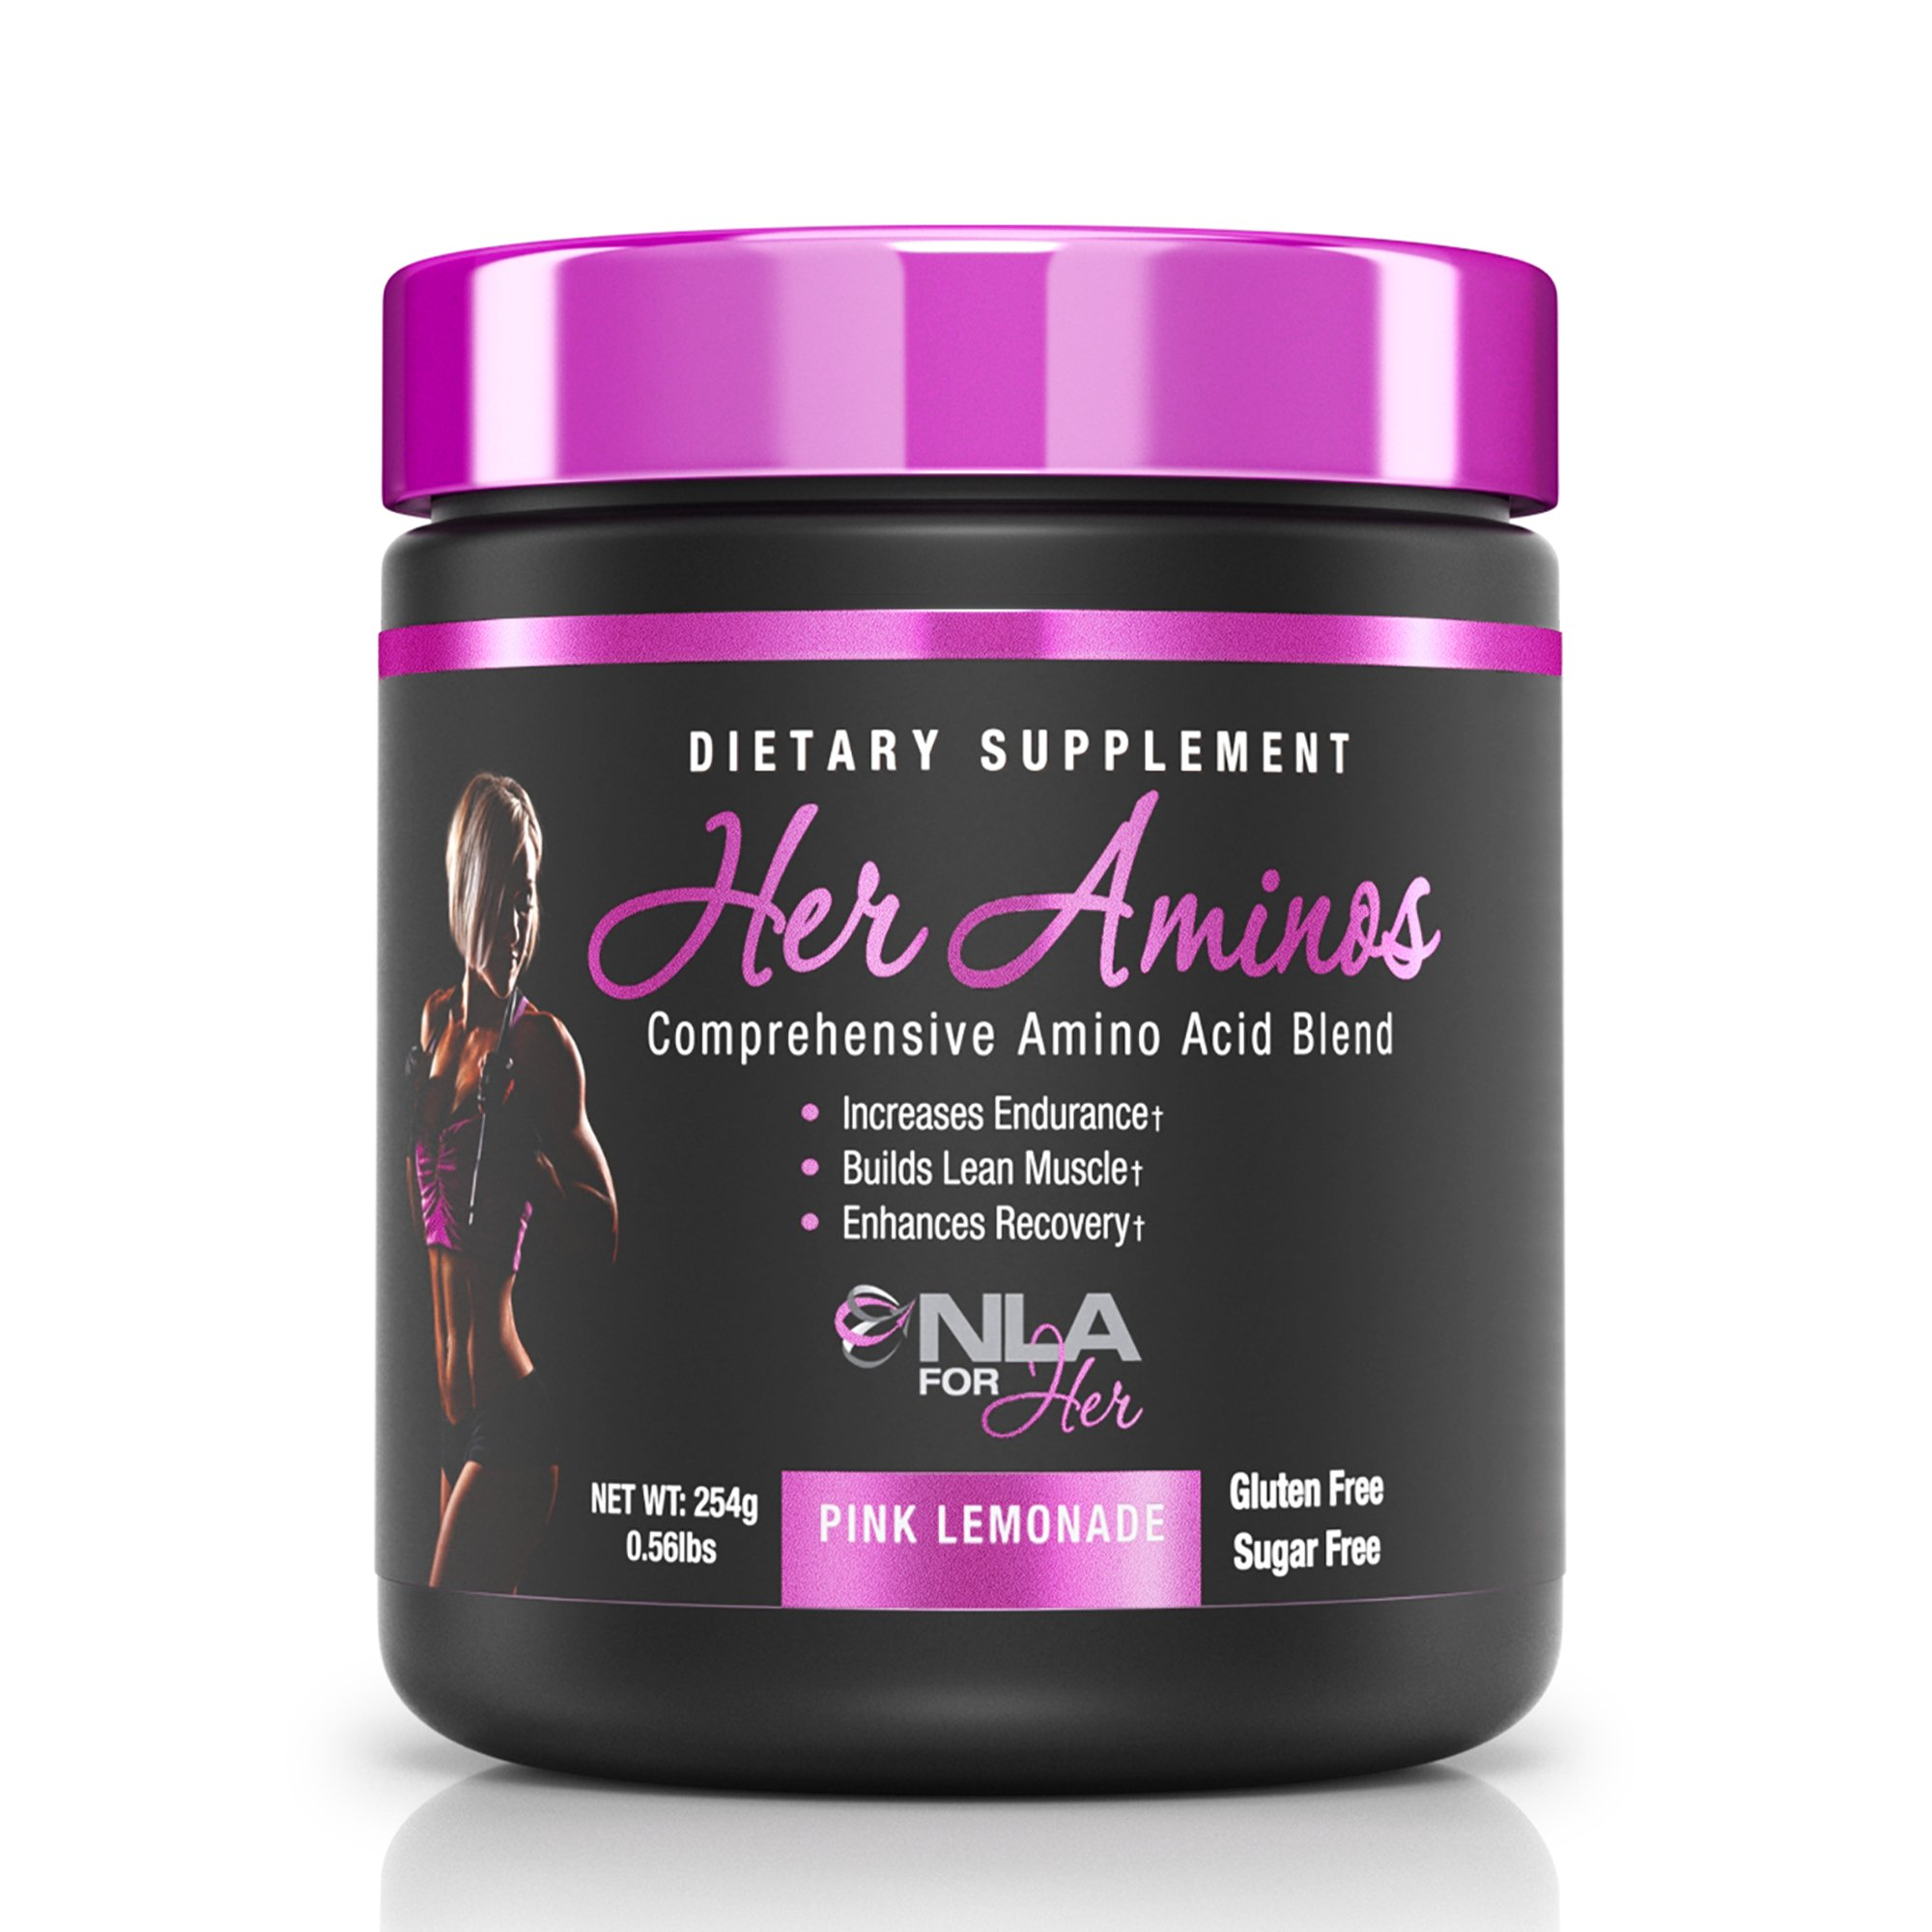 NLA for Her - Her Aminos - Comprehensive Amino Acid Blend - Supports Increased Endurance, Building Lean Muscle, Enhanced Recovery - Pink Lemonade - 254 Grams